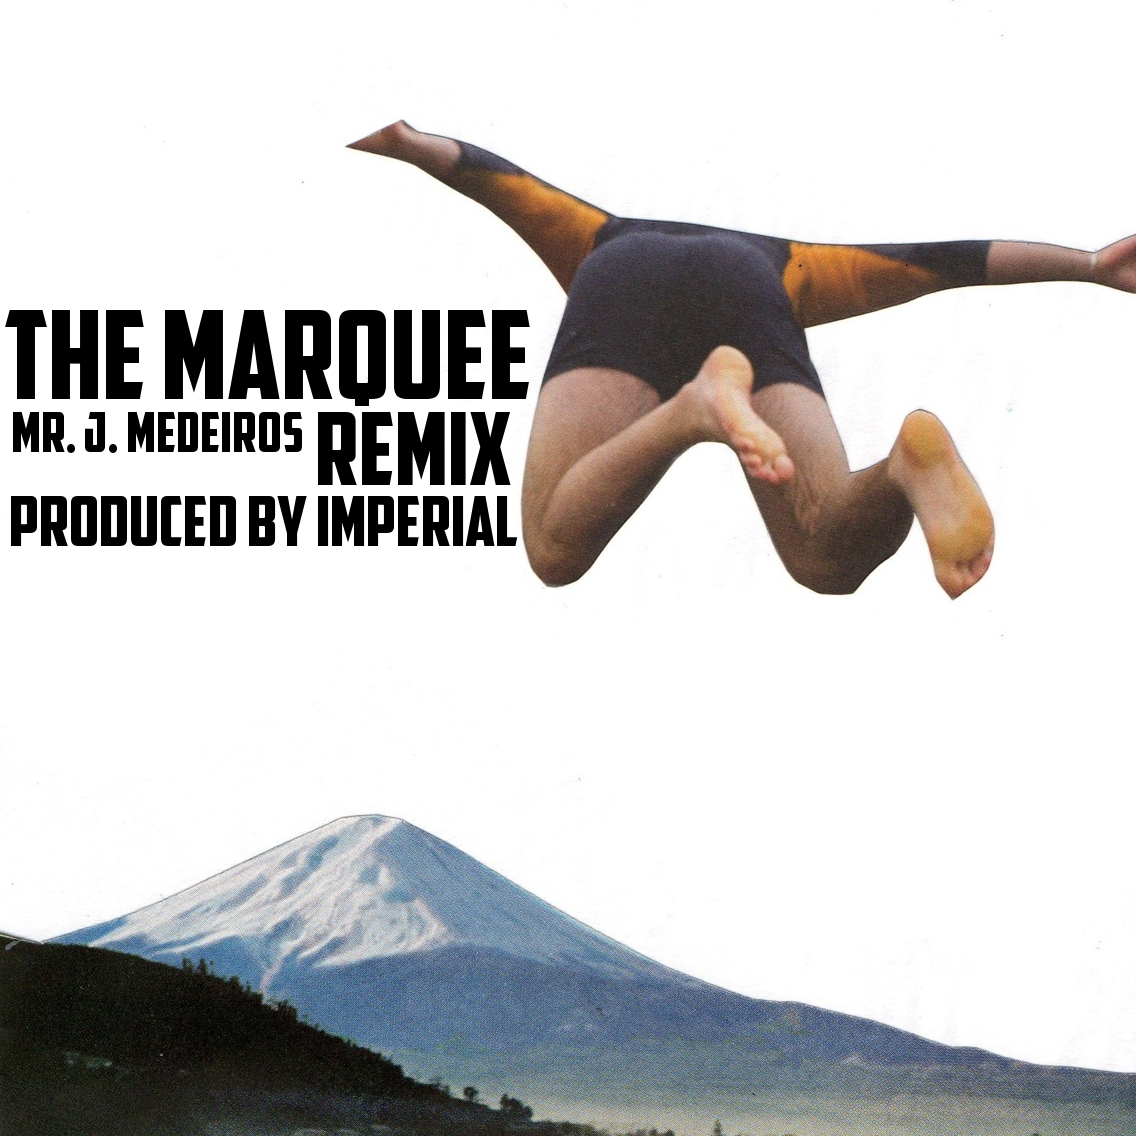 Free MP3: Mr. J Medeiros – The Marquee (Imperial Remix)